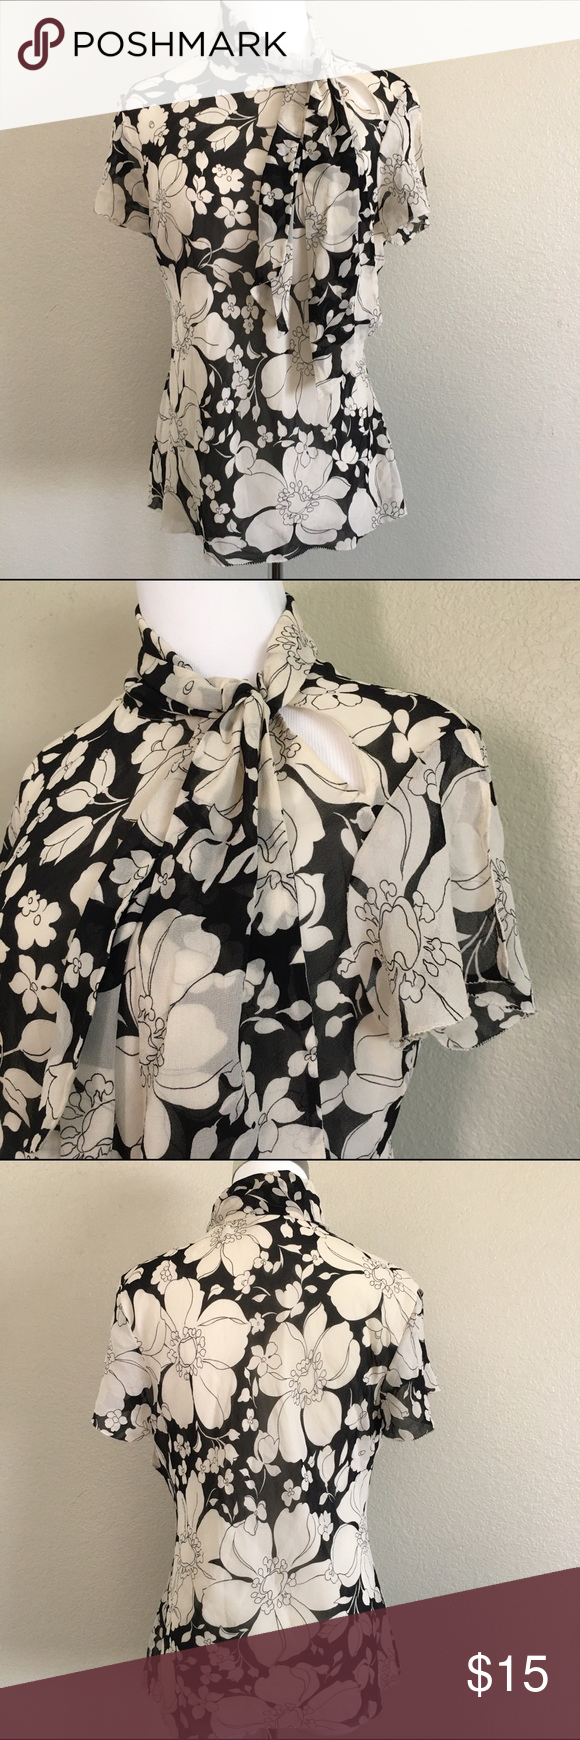 Black & Cream Floral Print Blouse. A nice elegant looking Banana Republic cream & black floral print. Size Large (a bit smaller so can fit a Medium). Shell 100% Silk, Lining 100% Polyester. In great condition. Banana Republic Tops Blouses